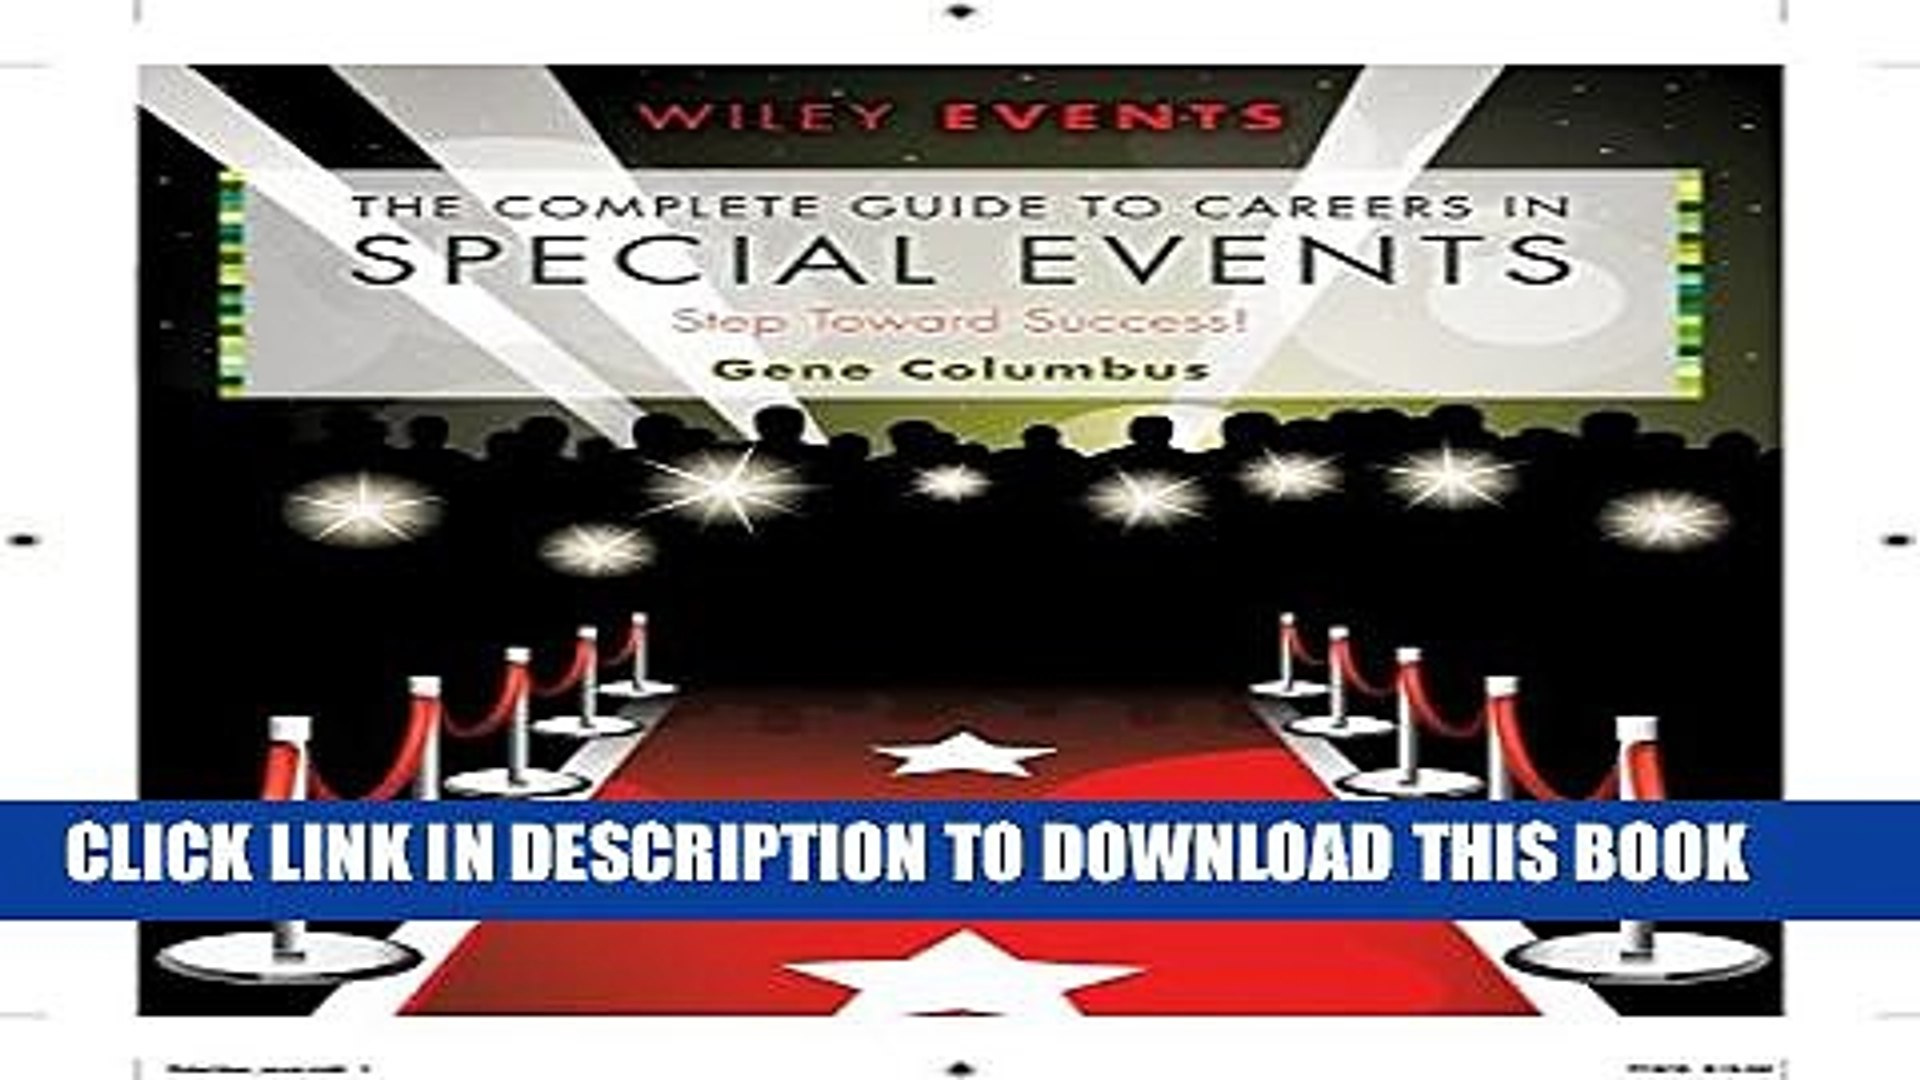 Collection Book The Complete Guide to Careers in Special Events